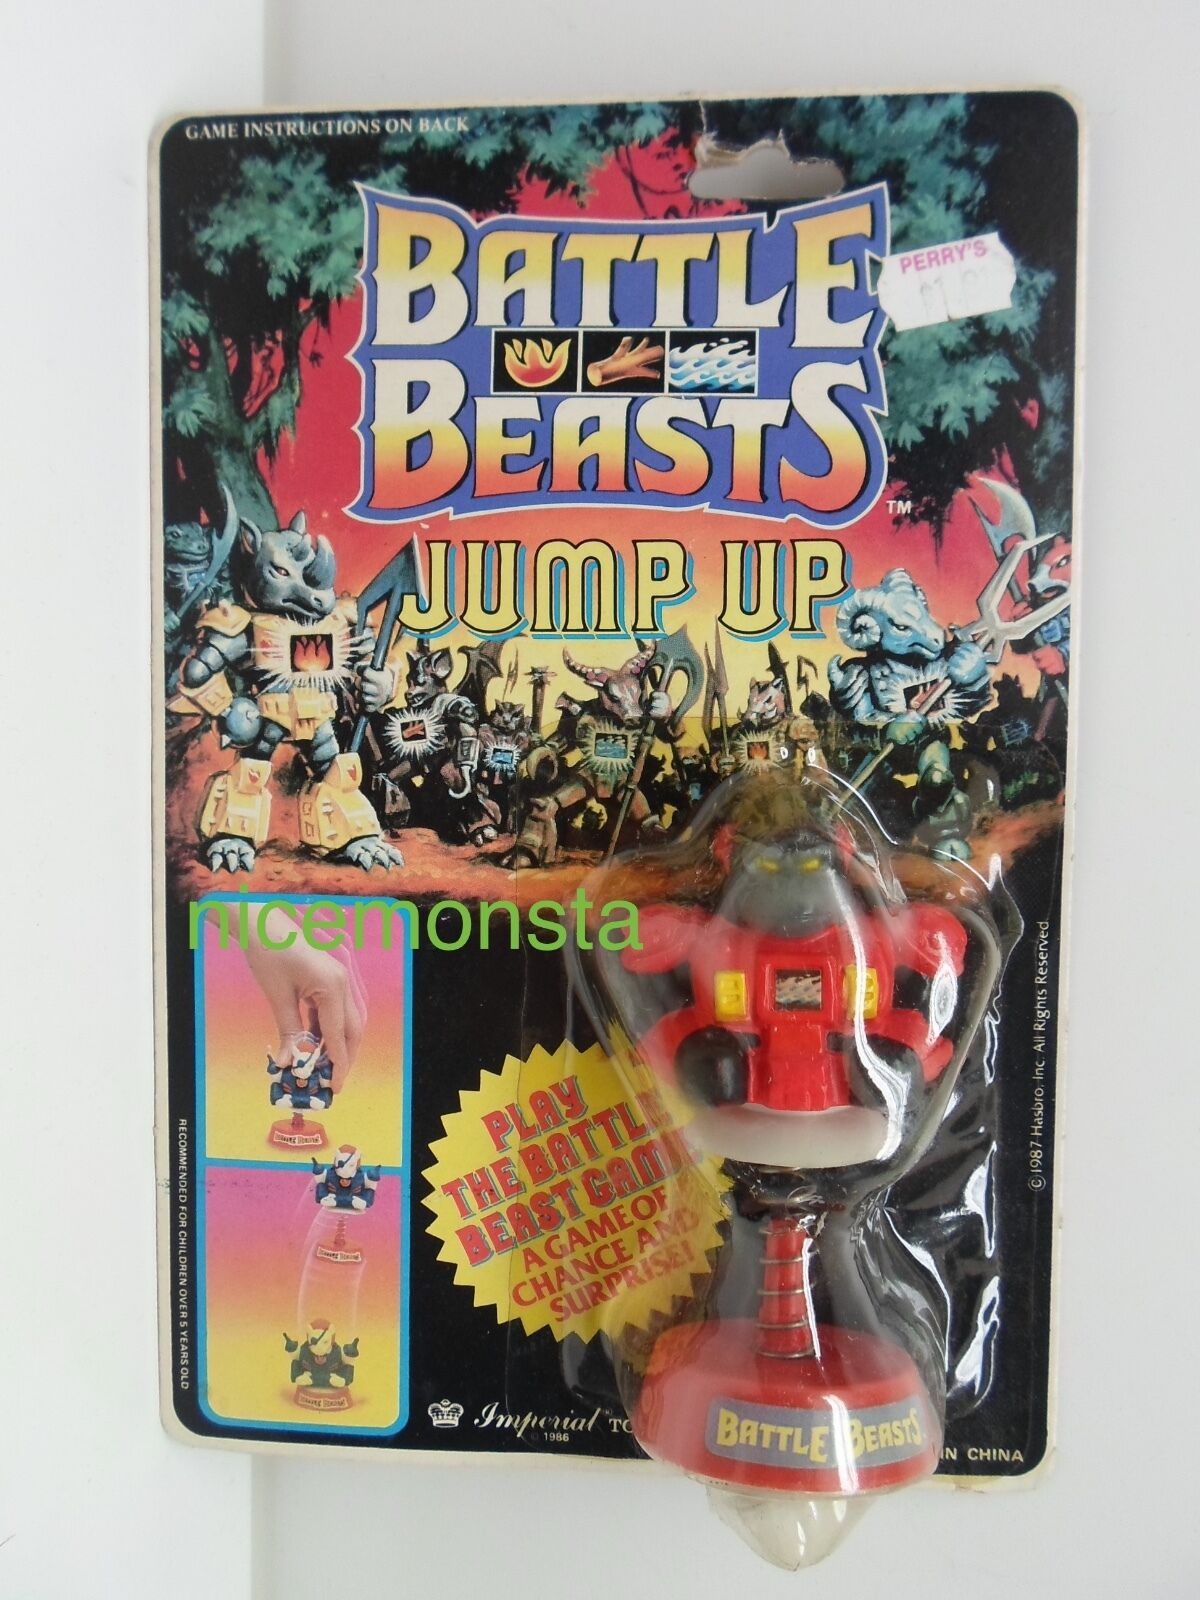 Battle Beasts Jump Ups GARGANTUAN GORILLA Figure Imperial Toy Corp. 1986 SEALED